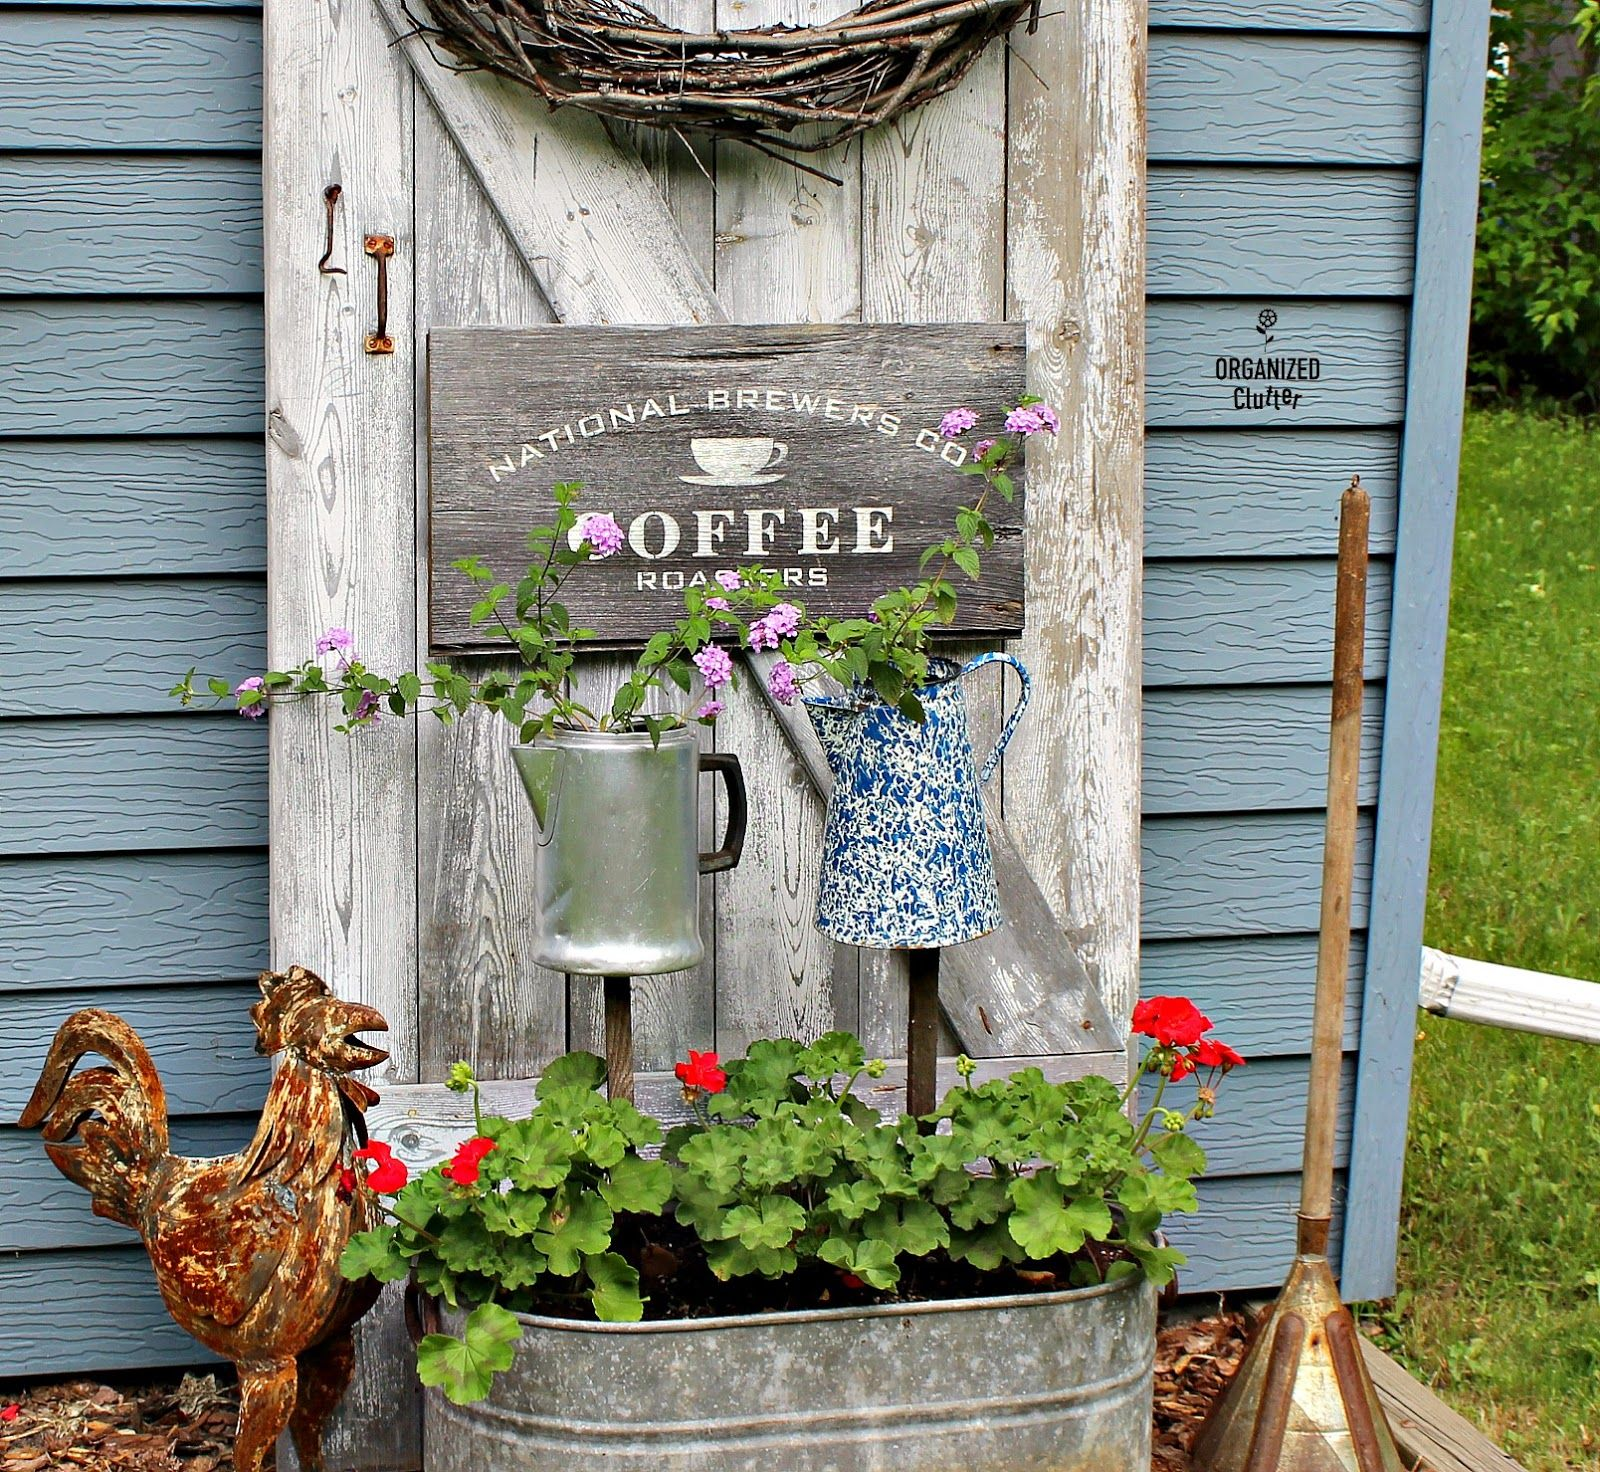 Garden decor out of junk  Coffee Themed Junk Garden Vignette with Barn Door Backdrop